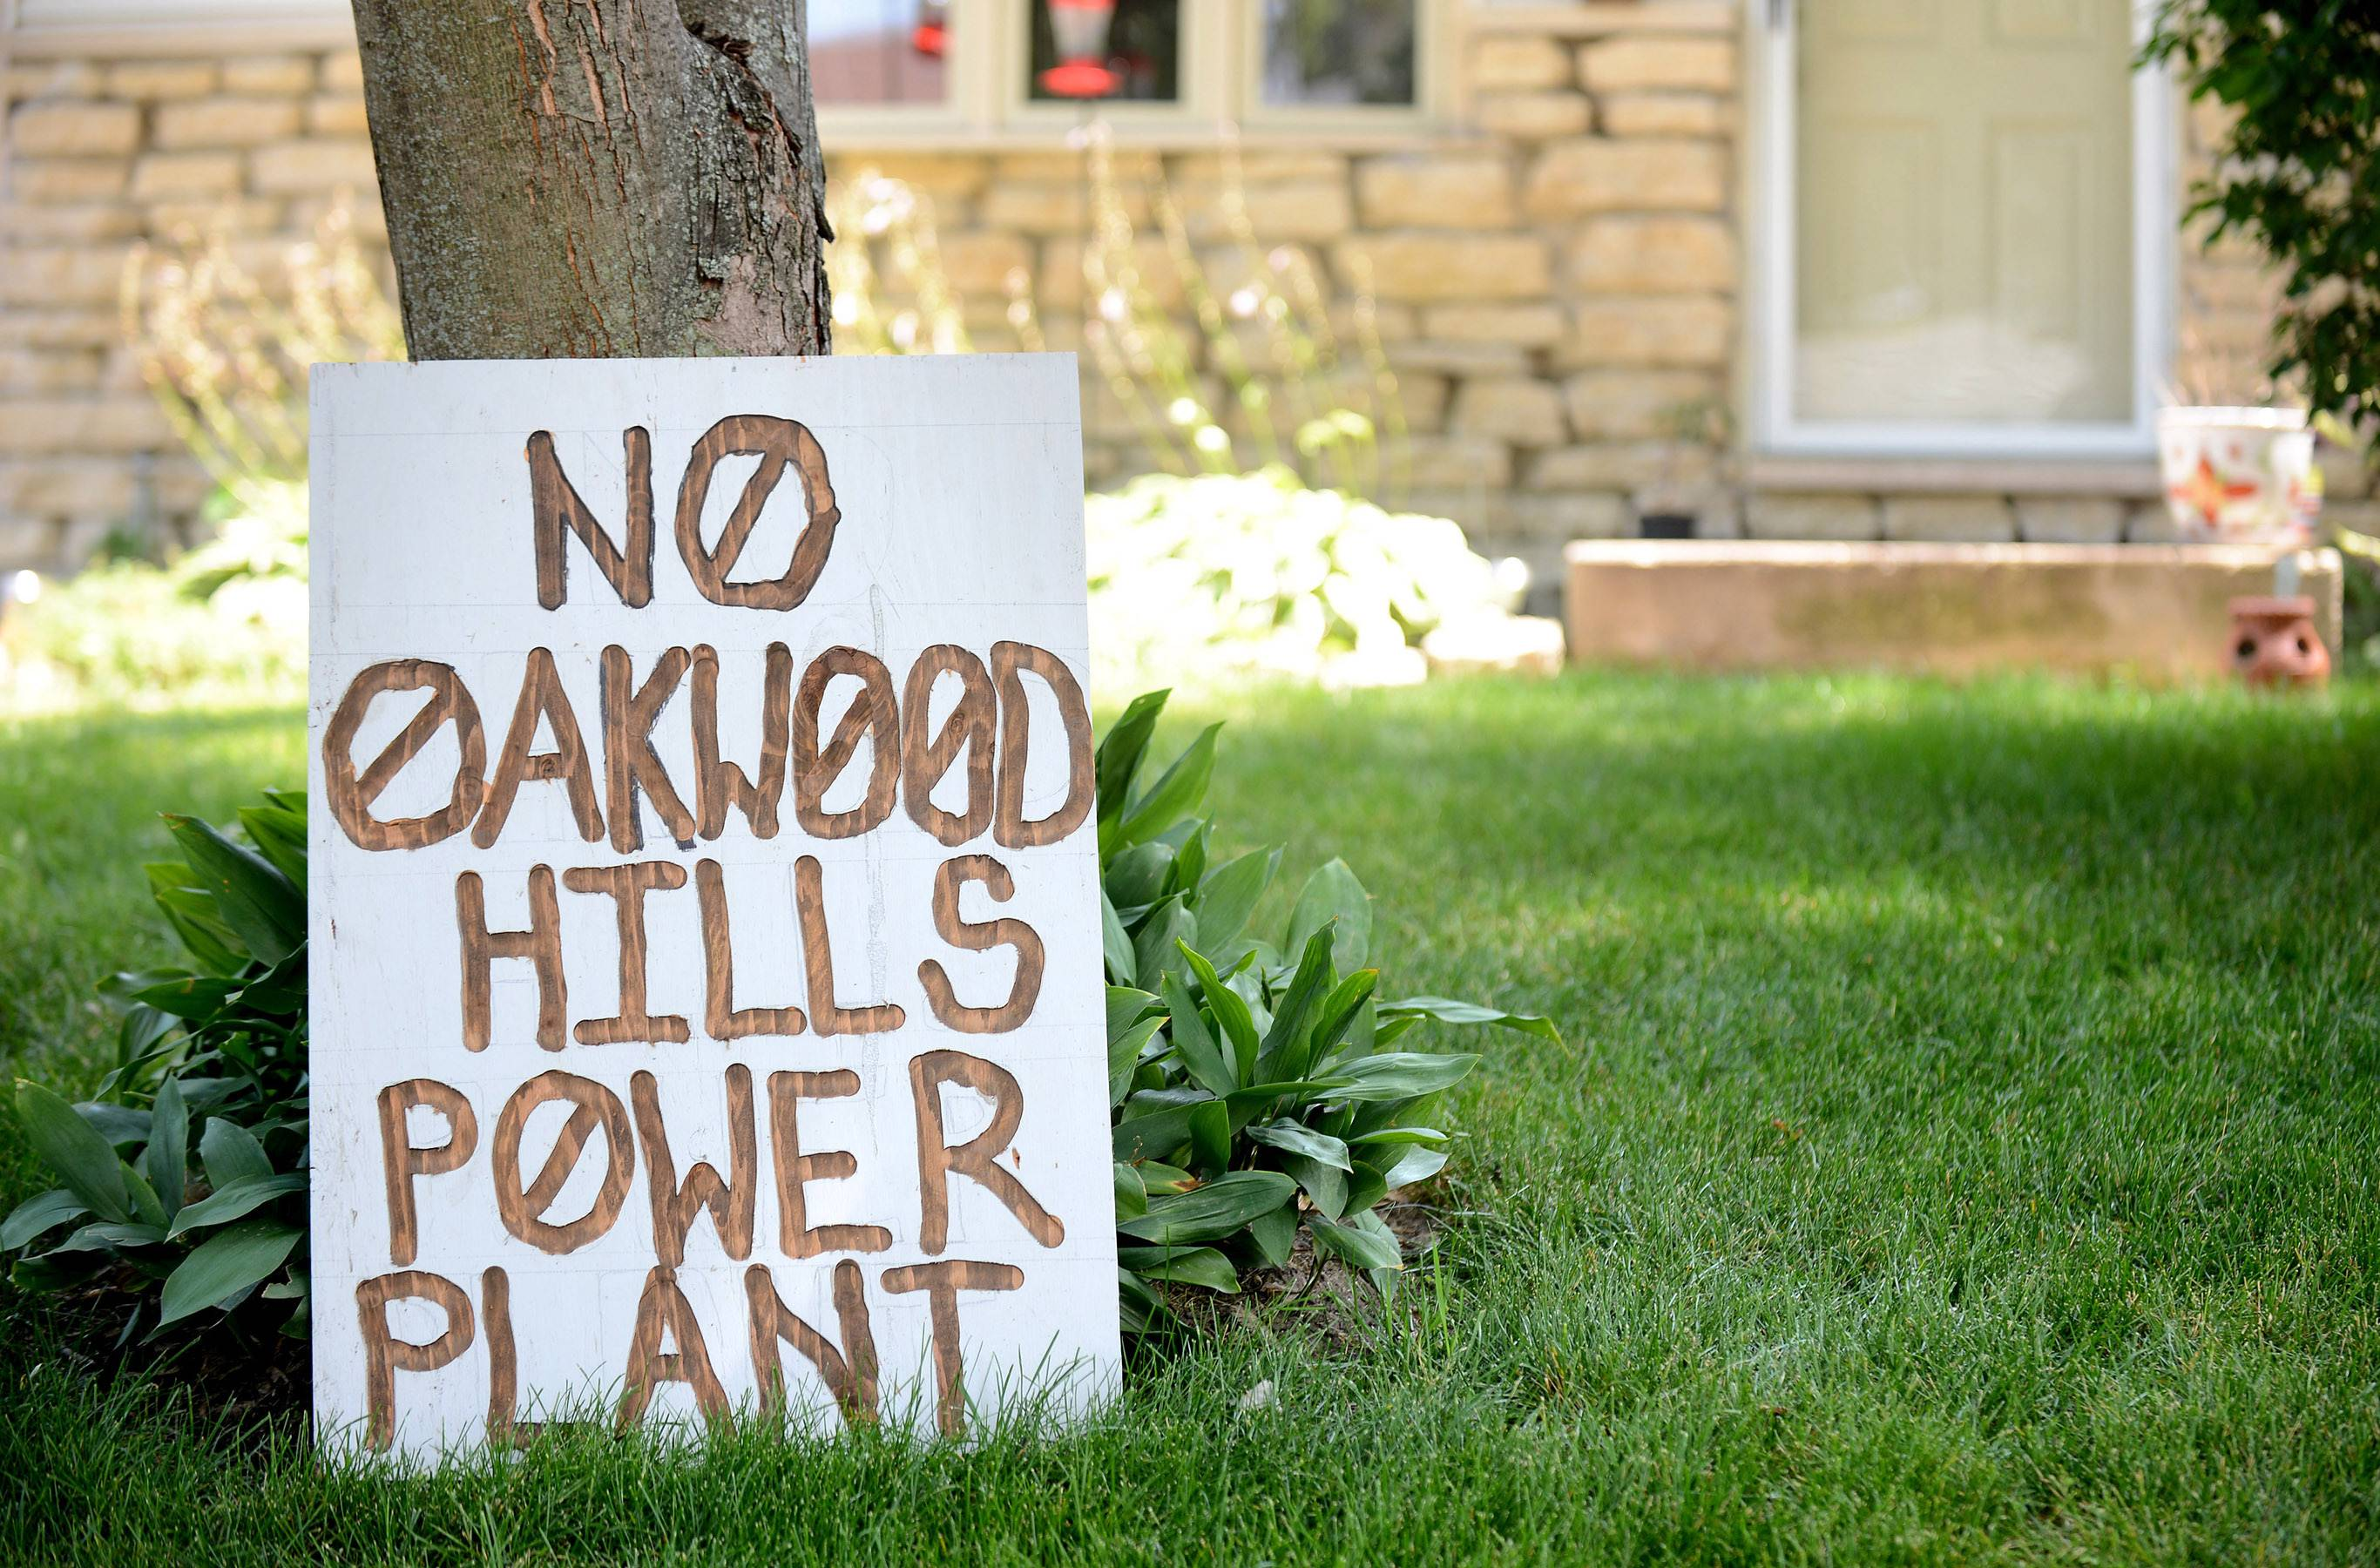 Oakwood Hills power plant proposal dies